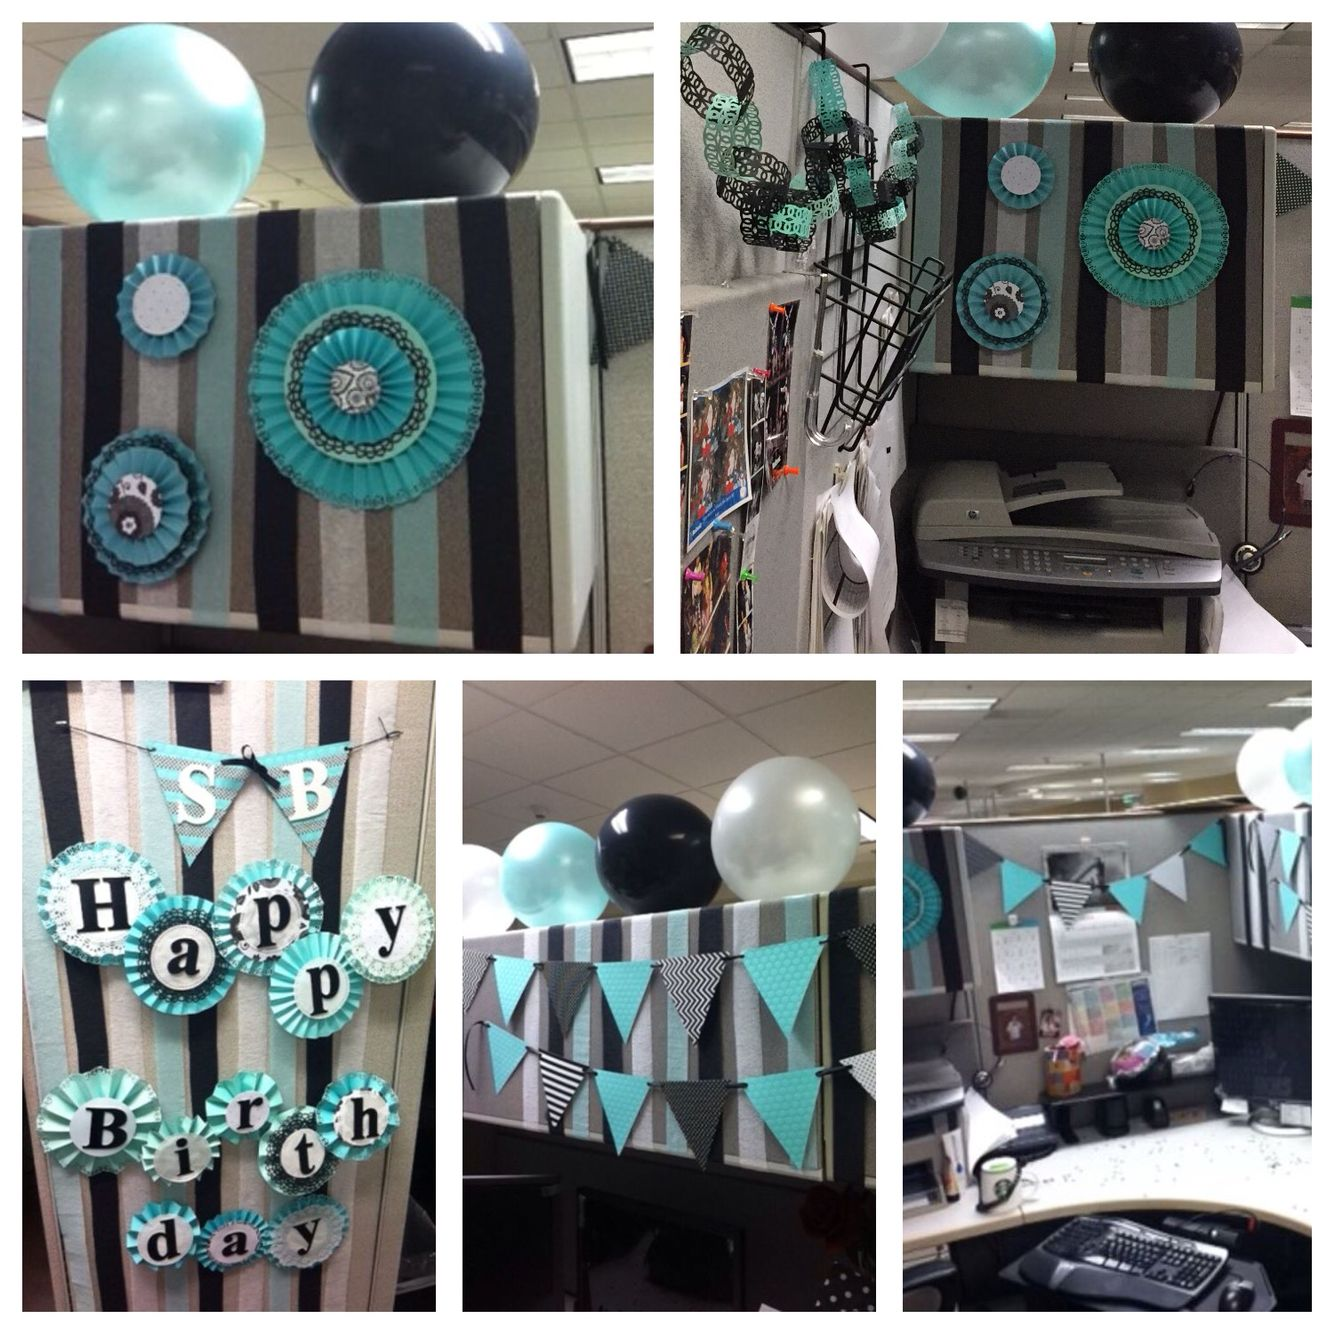 Diy office cubicle door - Cubicle Birthday Decoration For My Coworker